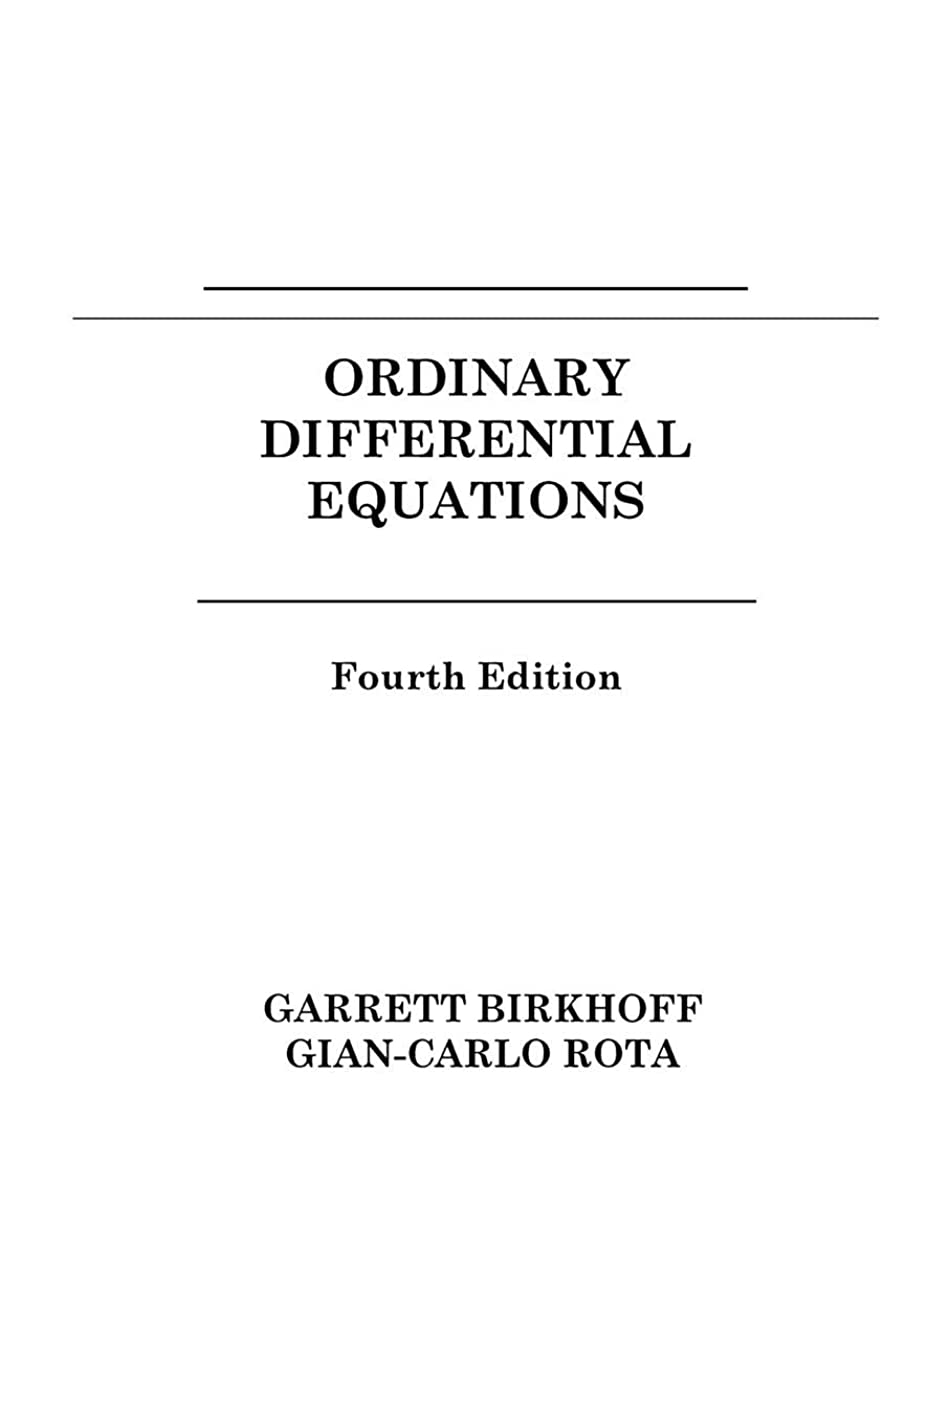 減衰宗教的な意図するOrdinary Differential Equations 4e